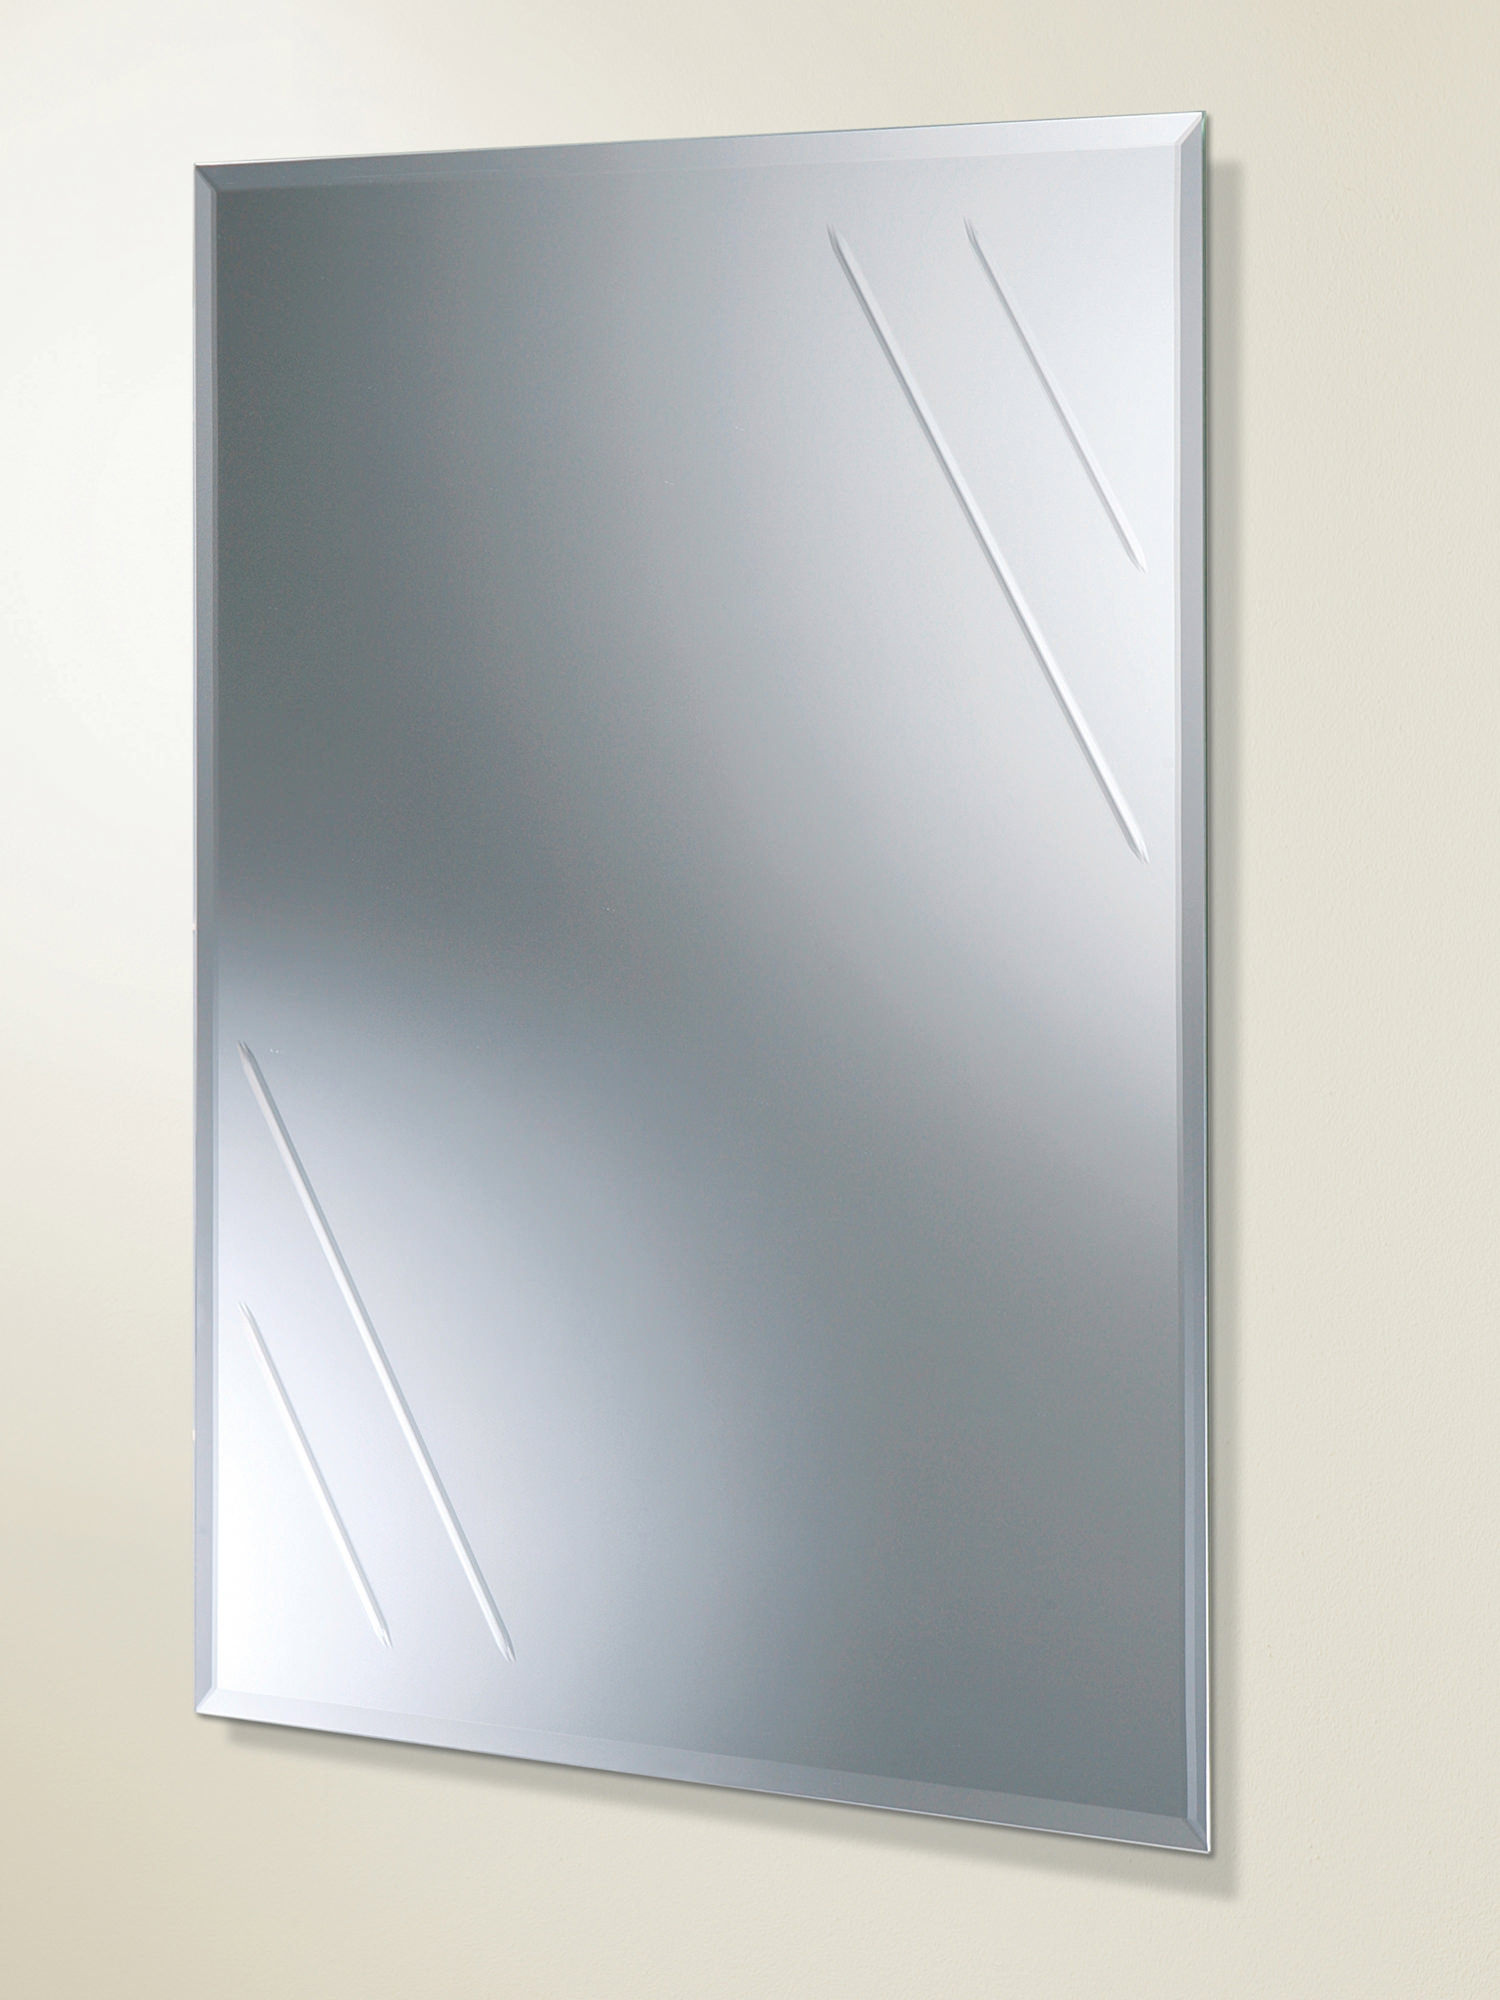 Hib Albina Rectangular Bevelled Edge Bathroom Mirror 61164100 For Mirror Bevelled Edge (Image 6 of 15)